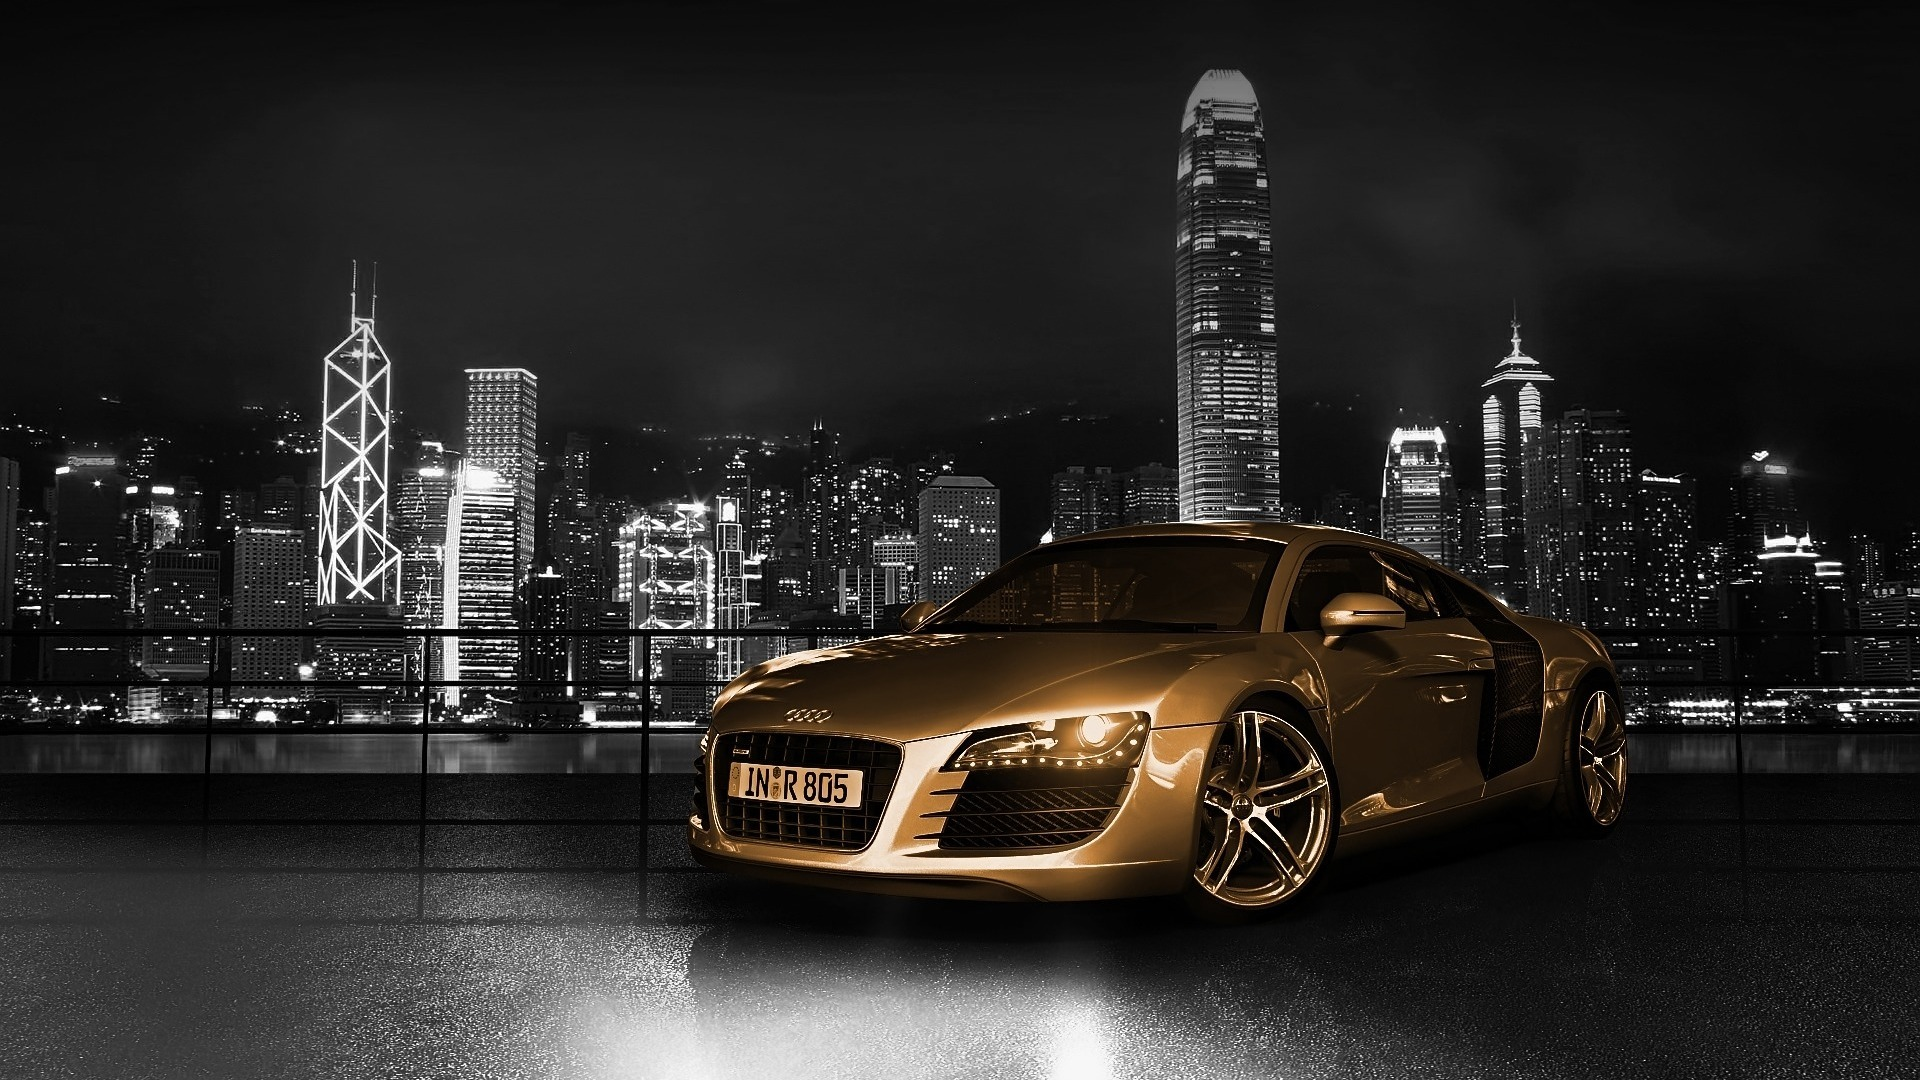 skylines cars Audi Hong HD Wallpaper